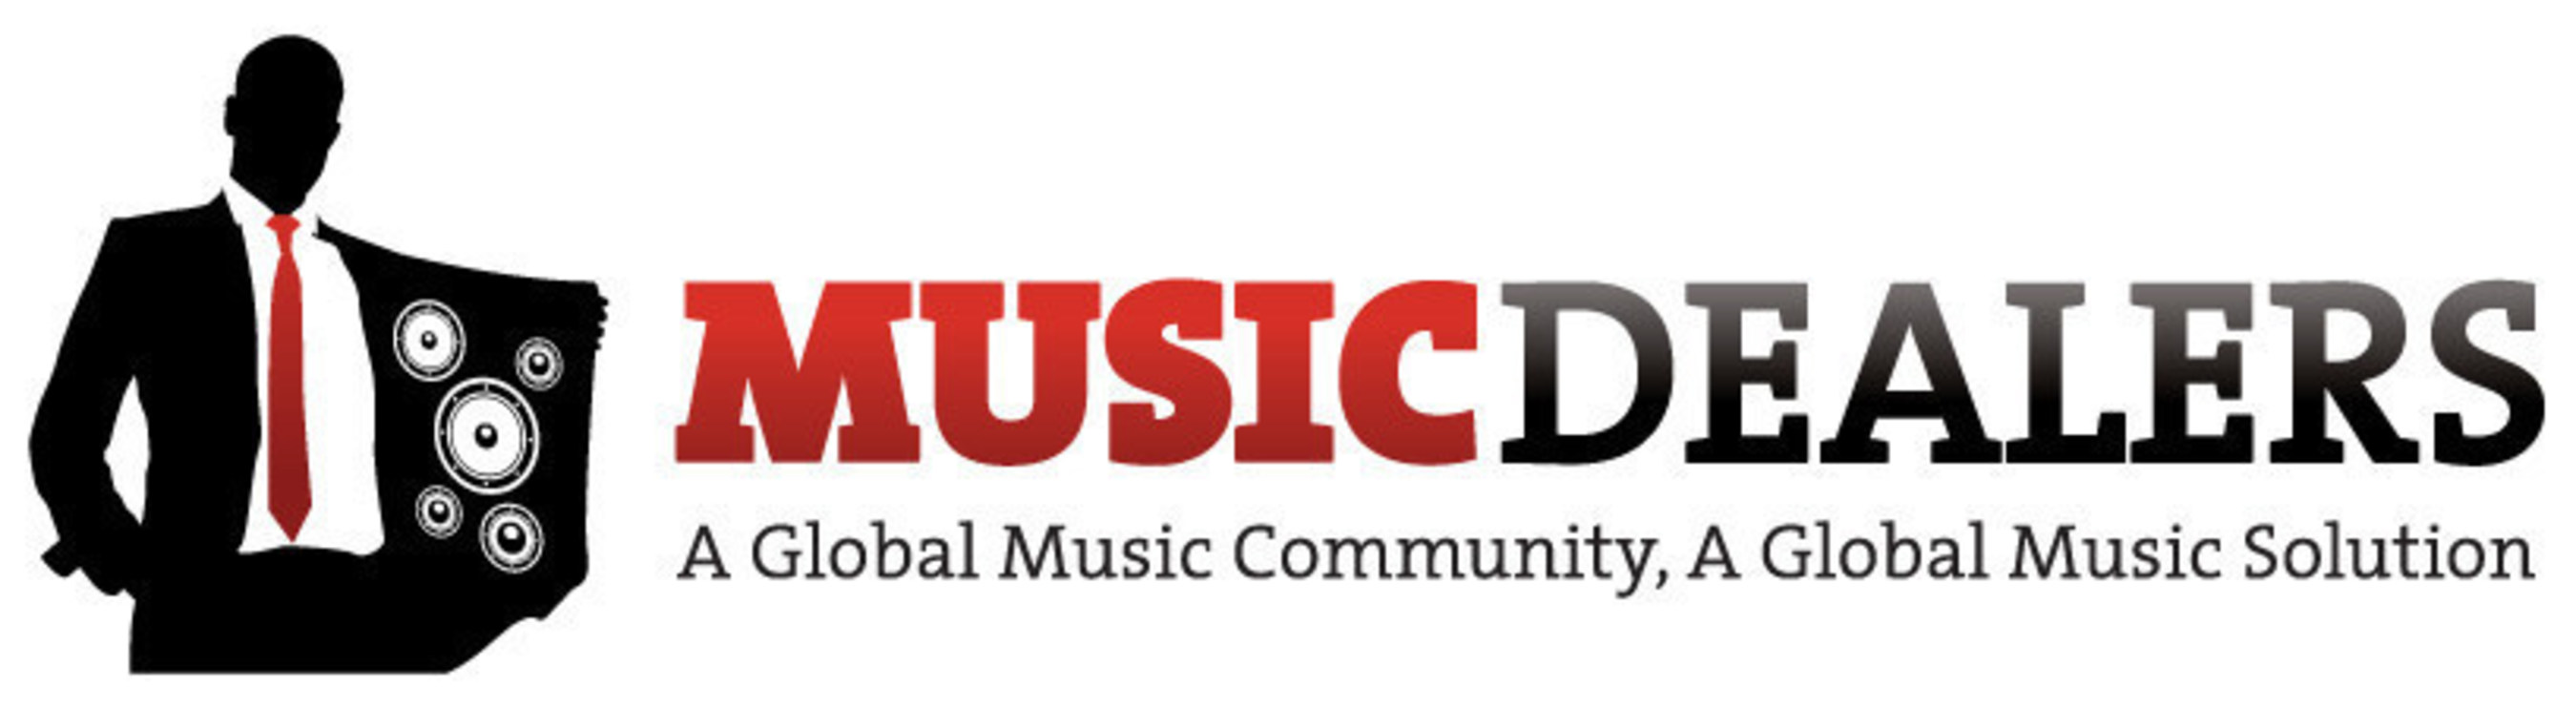 Music Dealers: A Global Music Community, A Global Music Solution